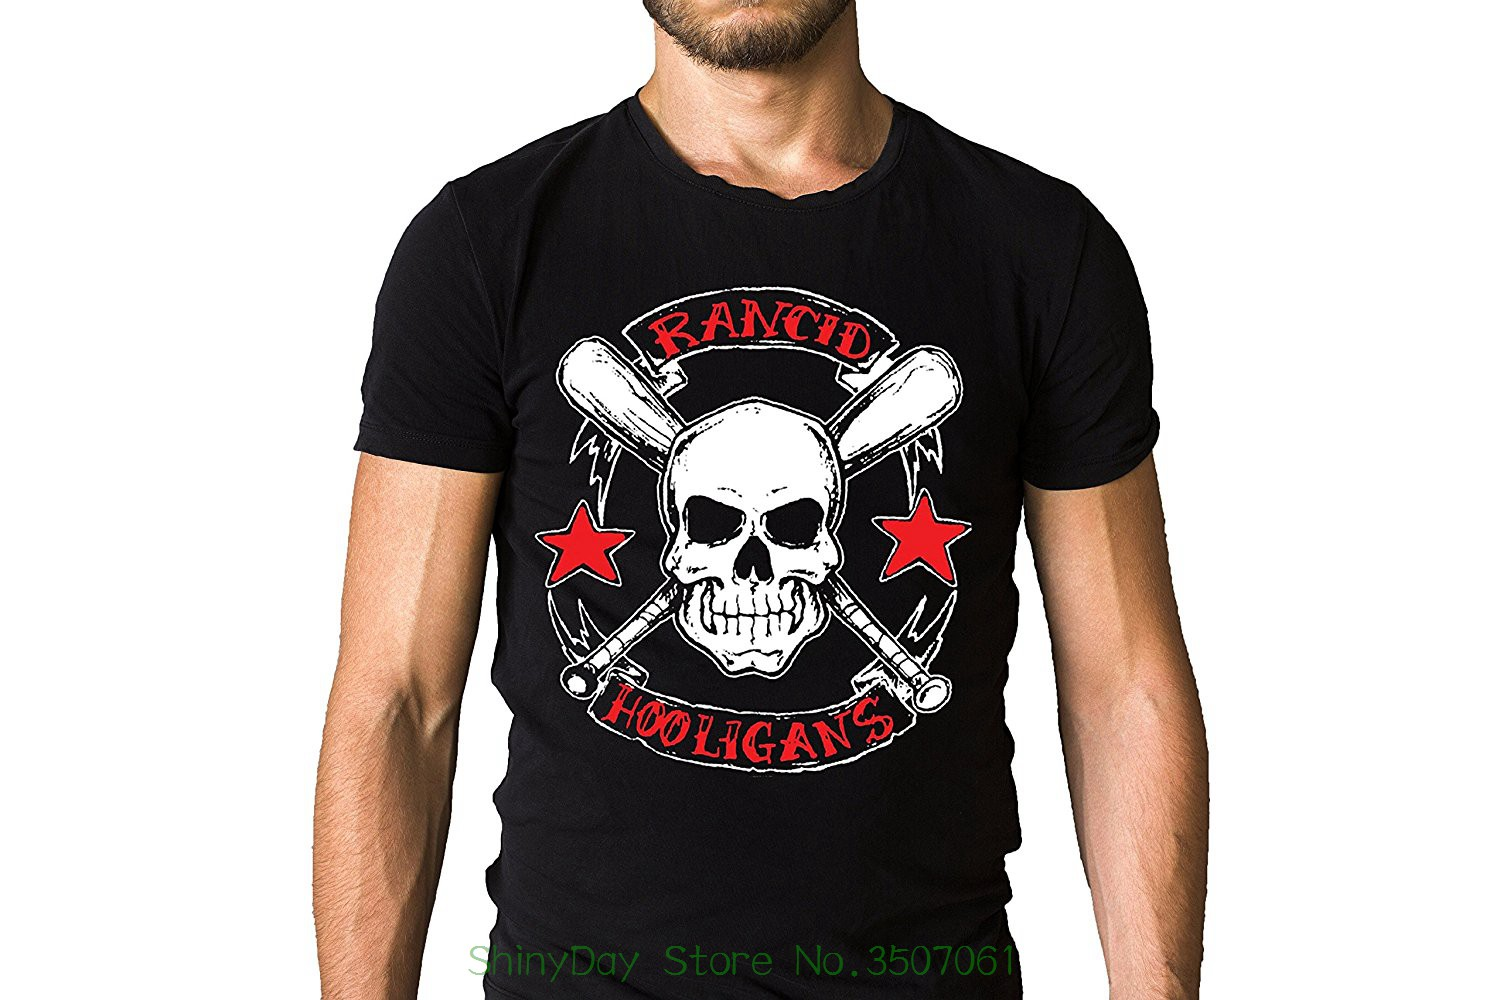 Short Sleeve Summer Style Rancid Punk Band Life Wont Wait 1998 Hooligans Song Inspired Skull Logo Black T-shirt